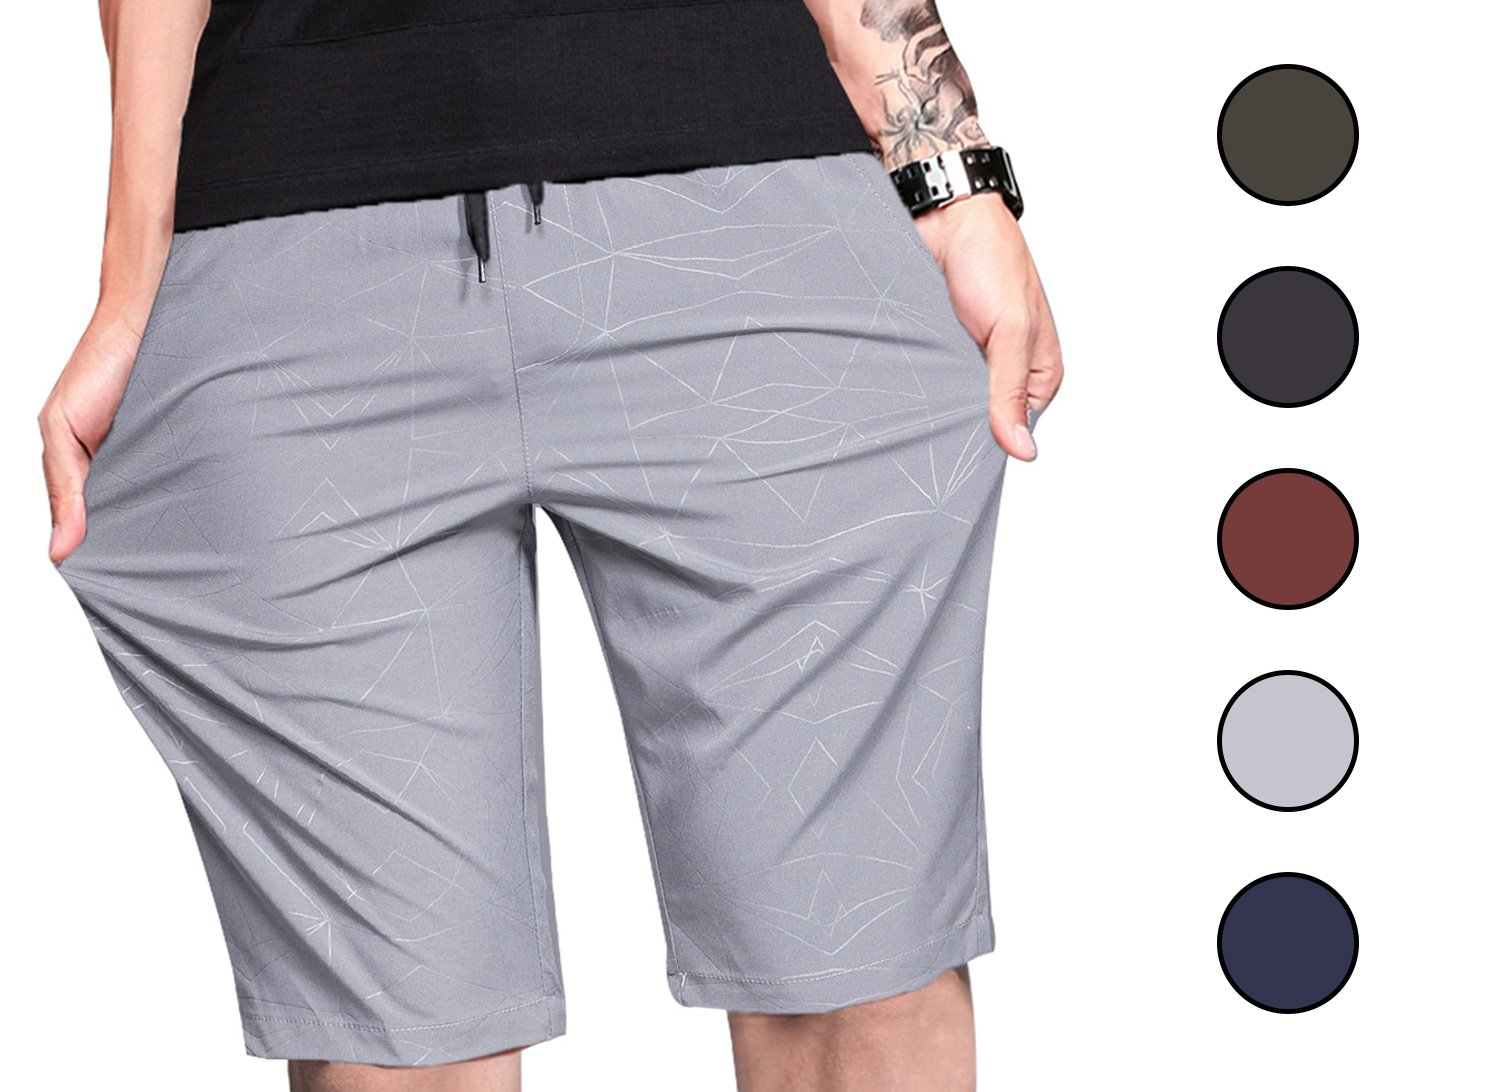 LTIFONE Mens Shorts Gym Training Bodybuilding Exercise Shorts Lightweight Quick Dry Spandex Mens Active Workout Shorts Athletic Summer Shorts(Grey,L)